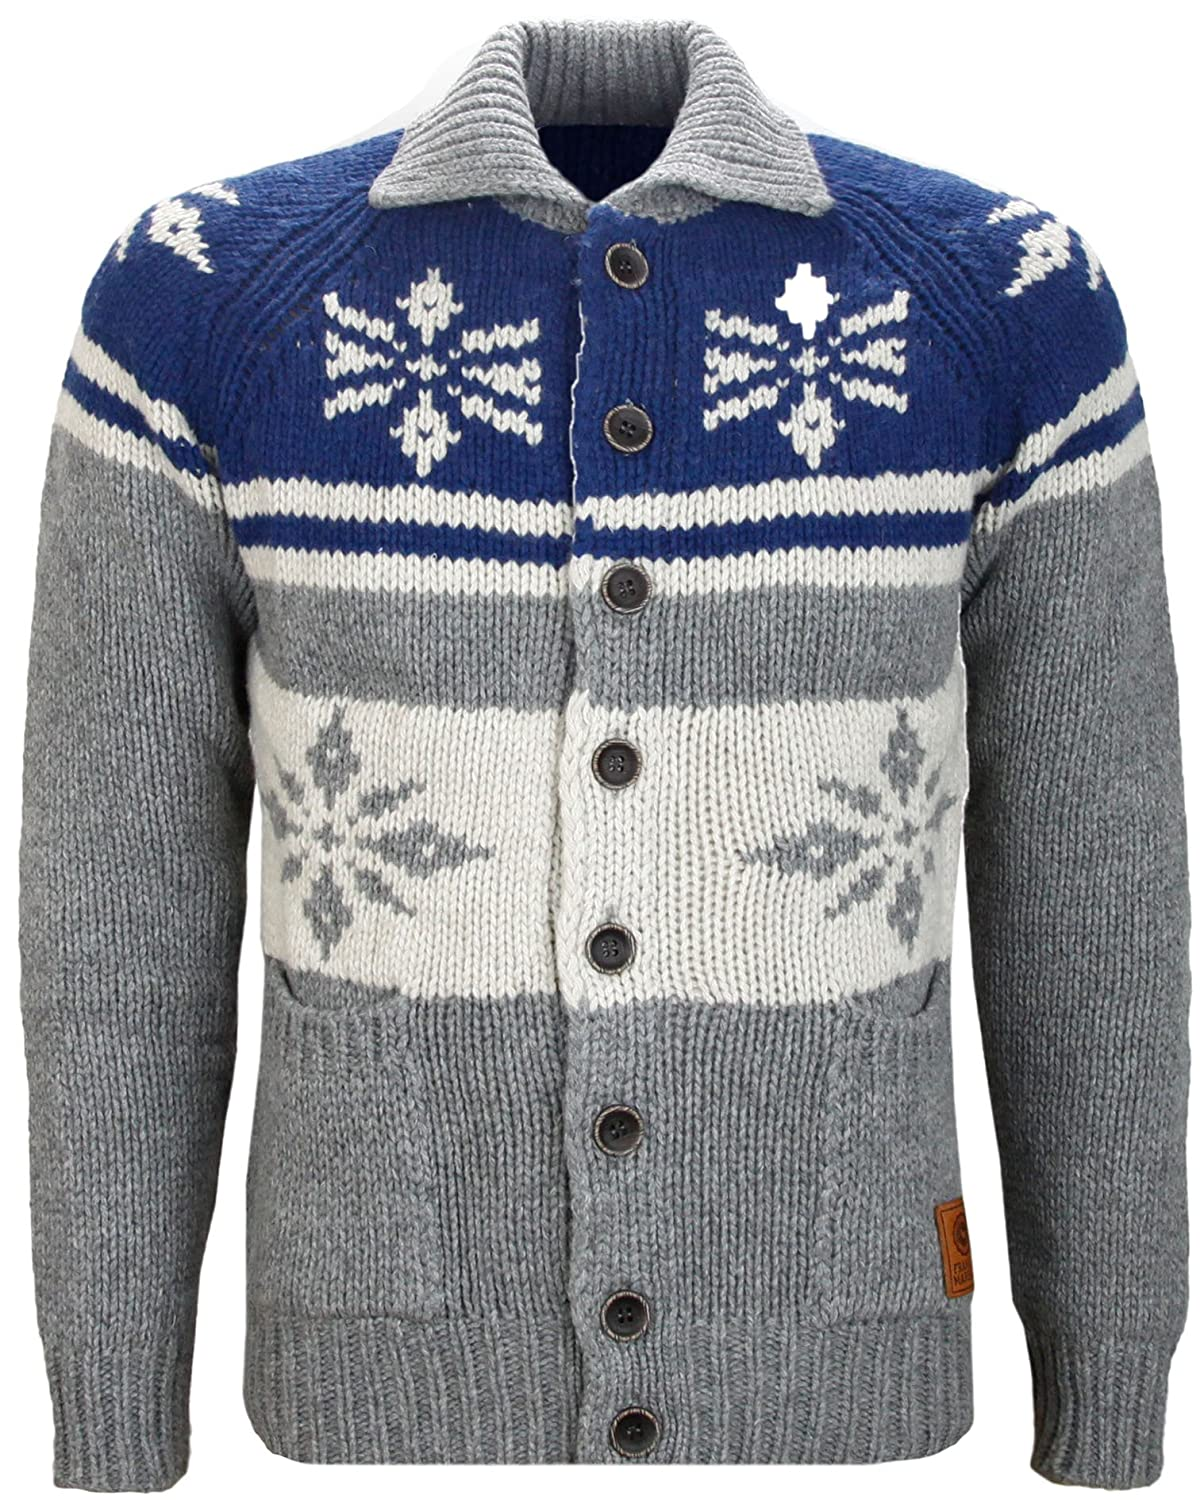 Franklin & Marshall Button Cardigan Wool Knitted Jumper